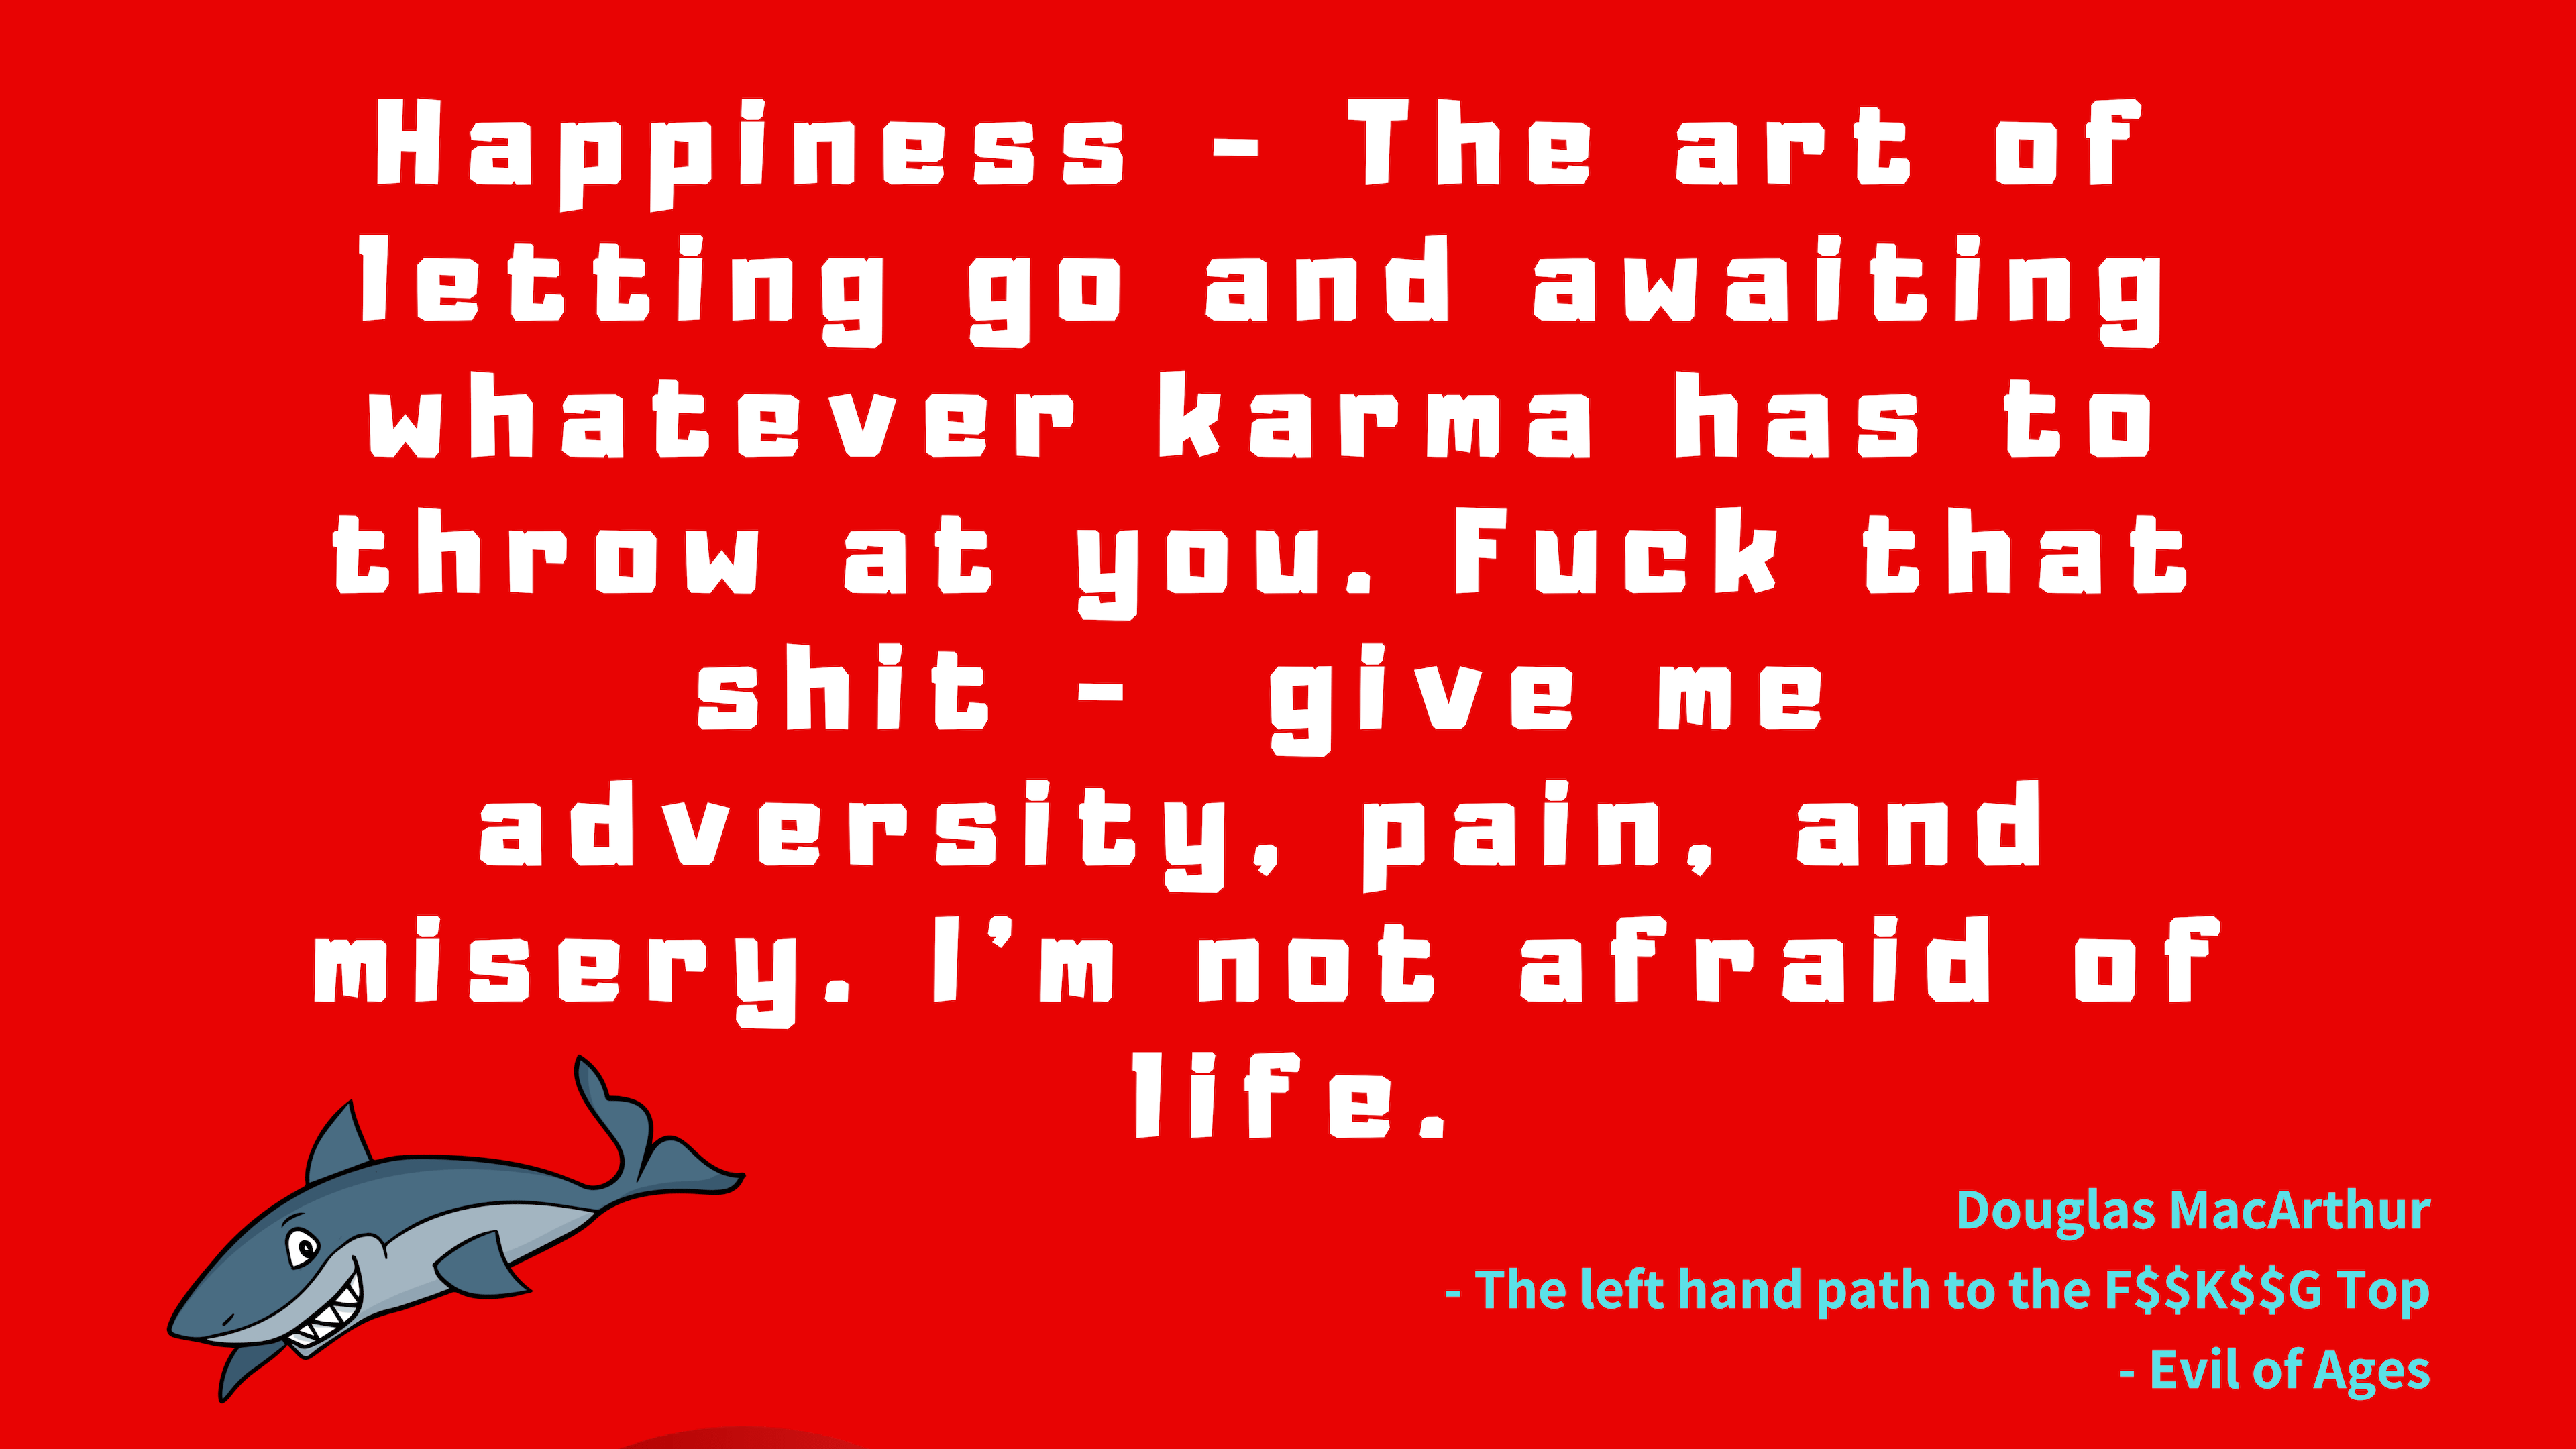 Happiness by Douglas MacArthur [3840 x2160]